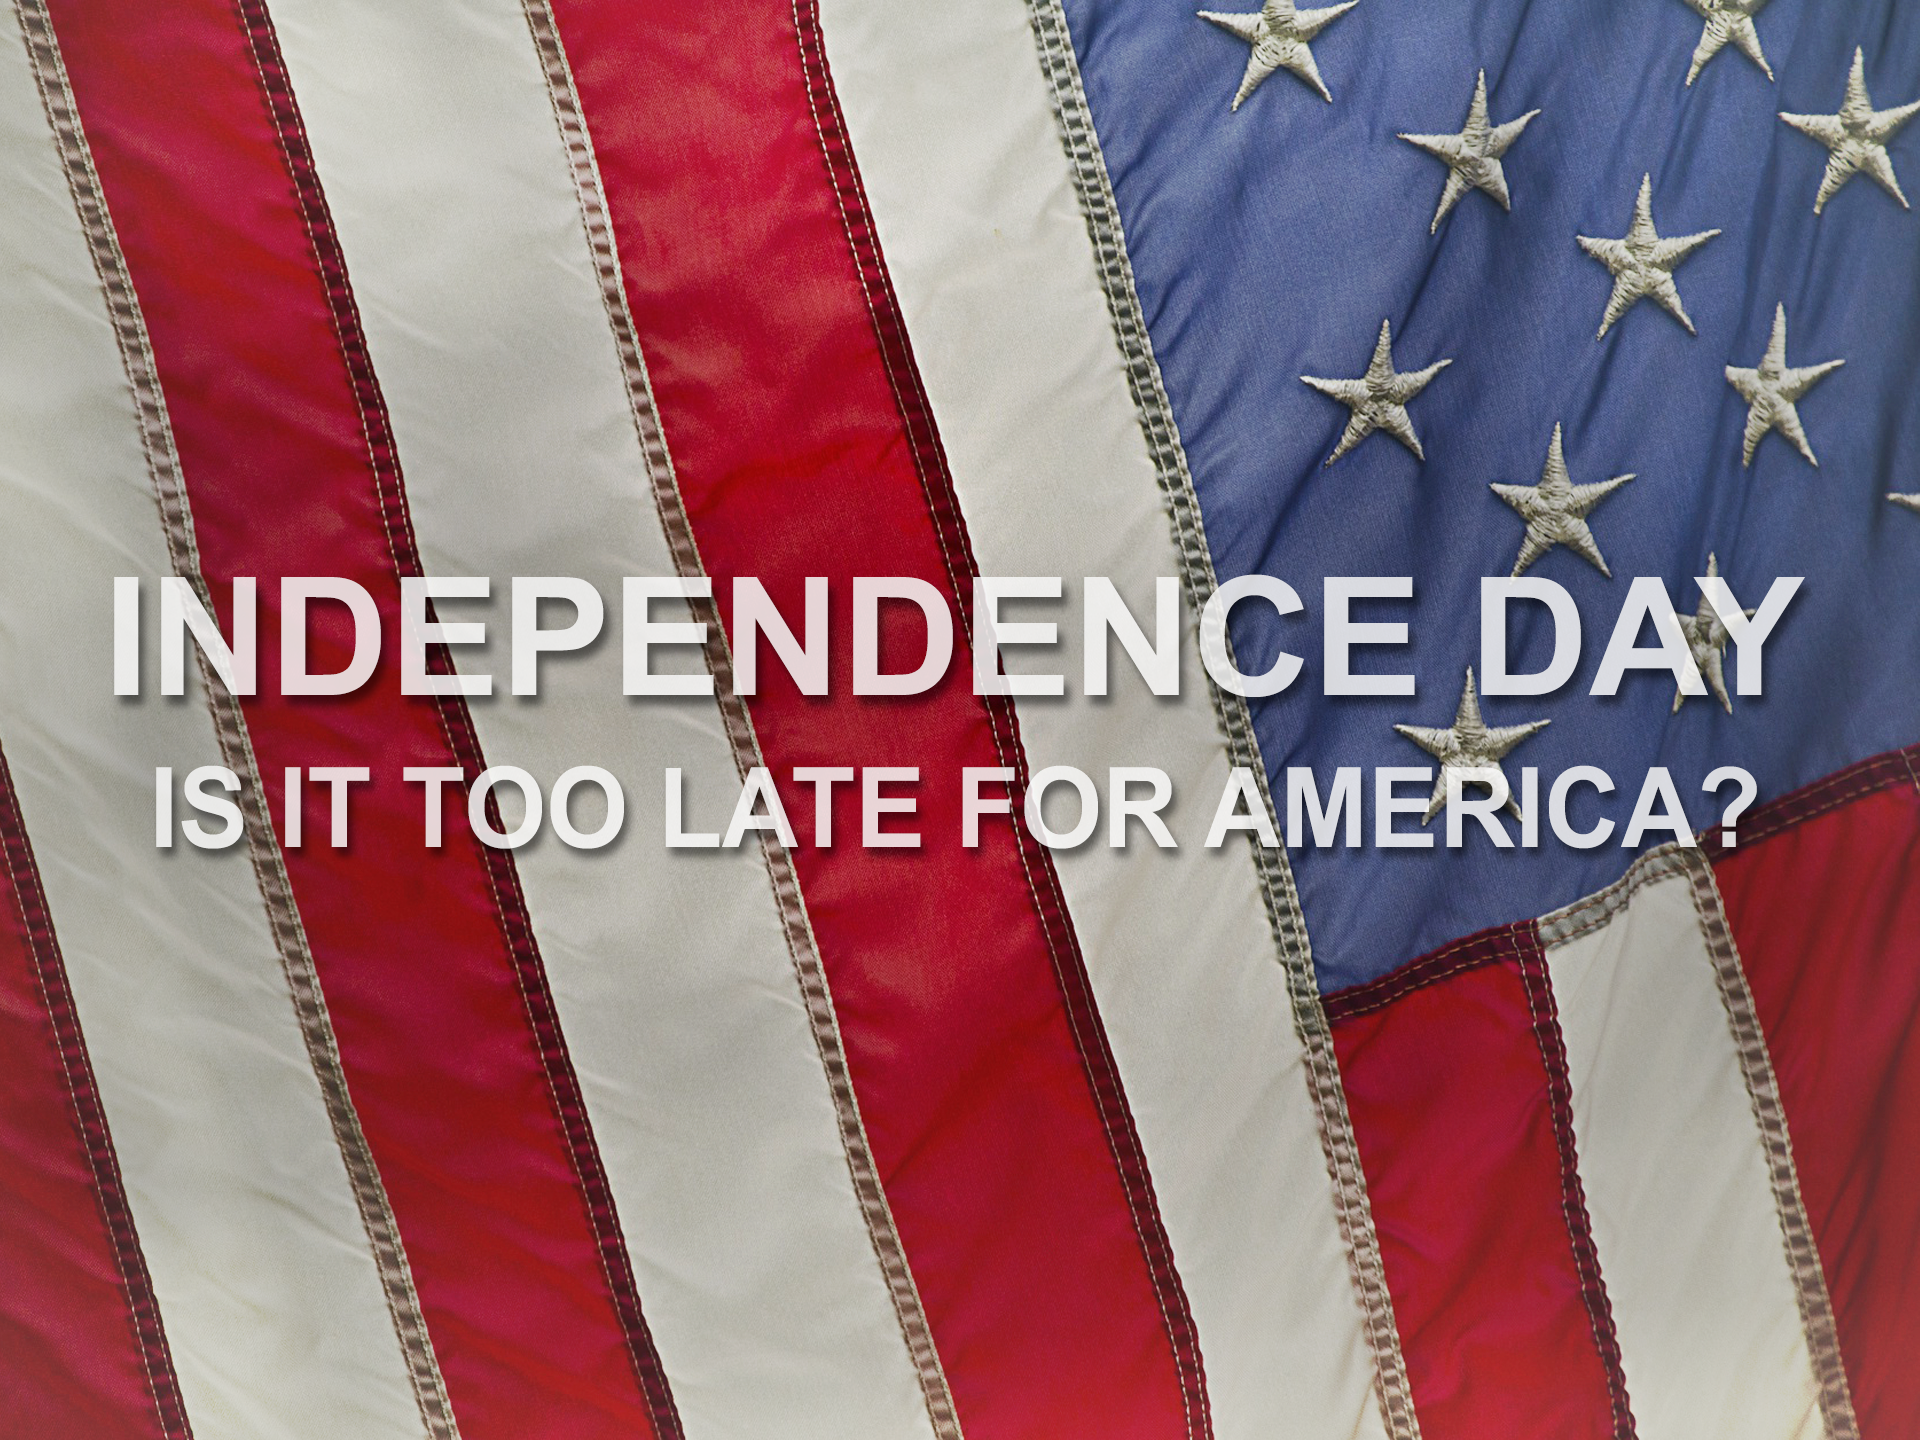 20170702 Independence Day-Is It Too Late For America.png